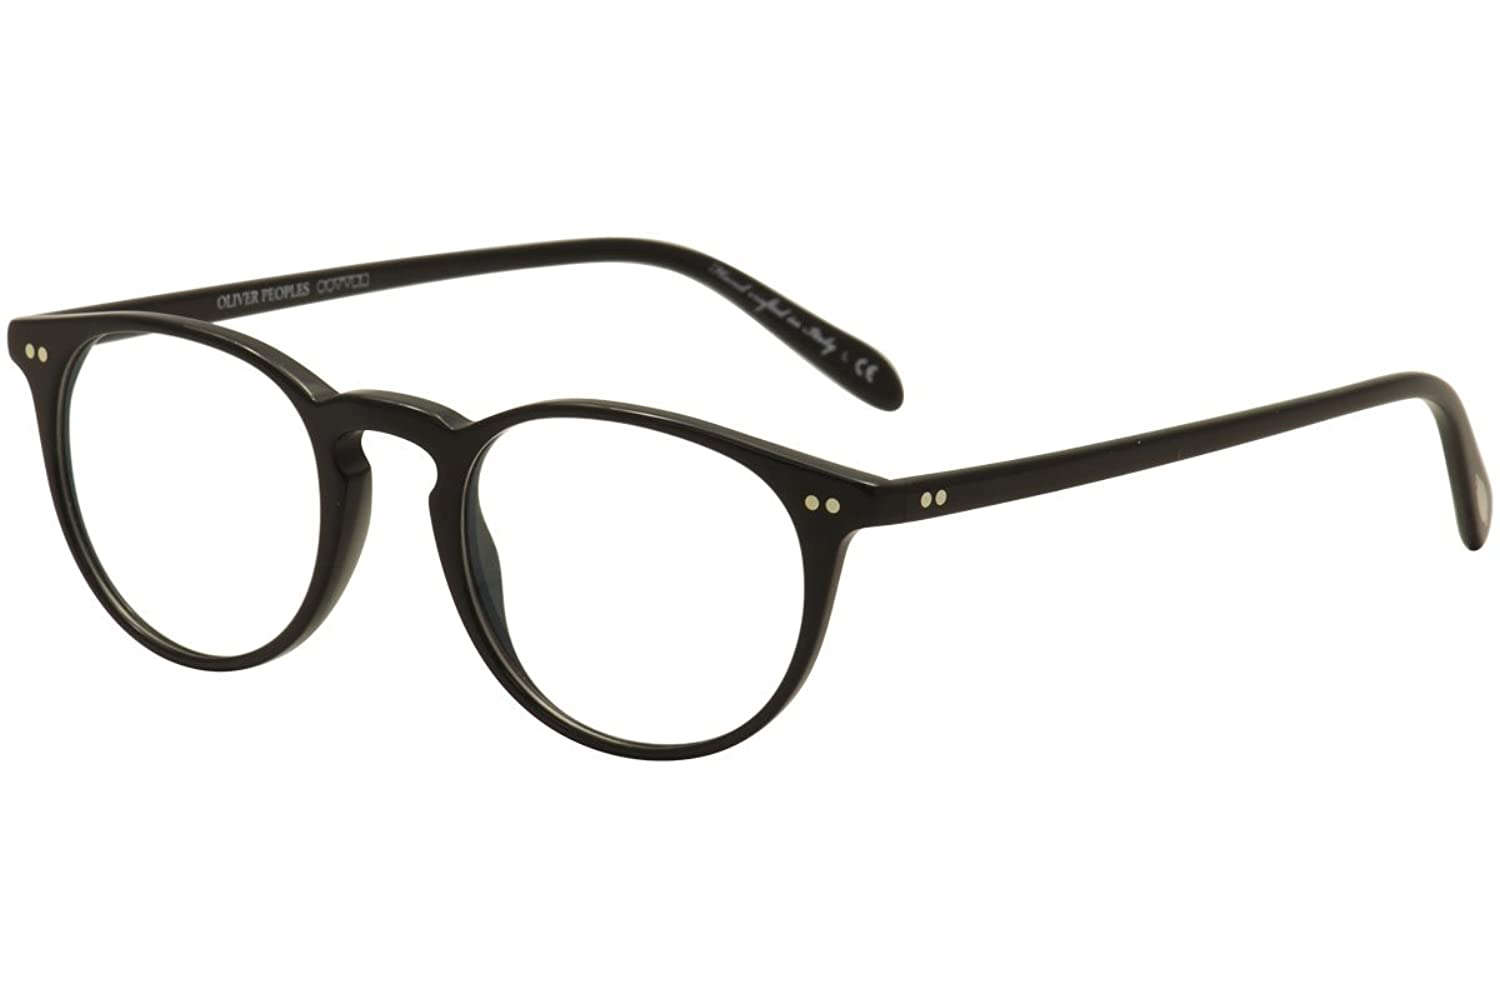 Amazon.com: Oliver Peoples Ov5315 Sheldrake Plus Vintage Demi ...